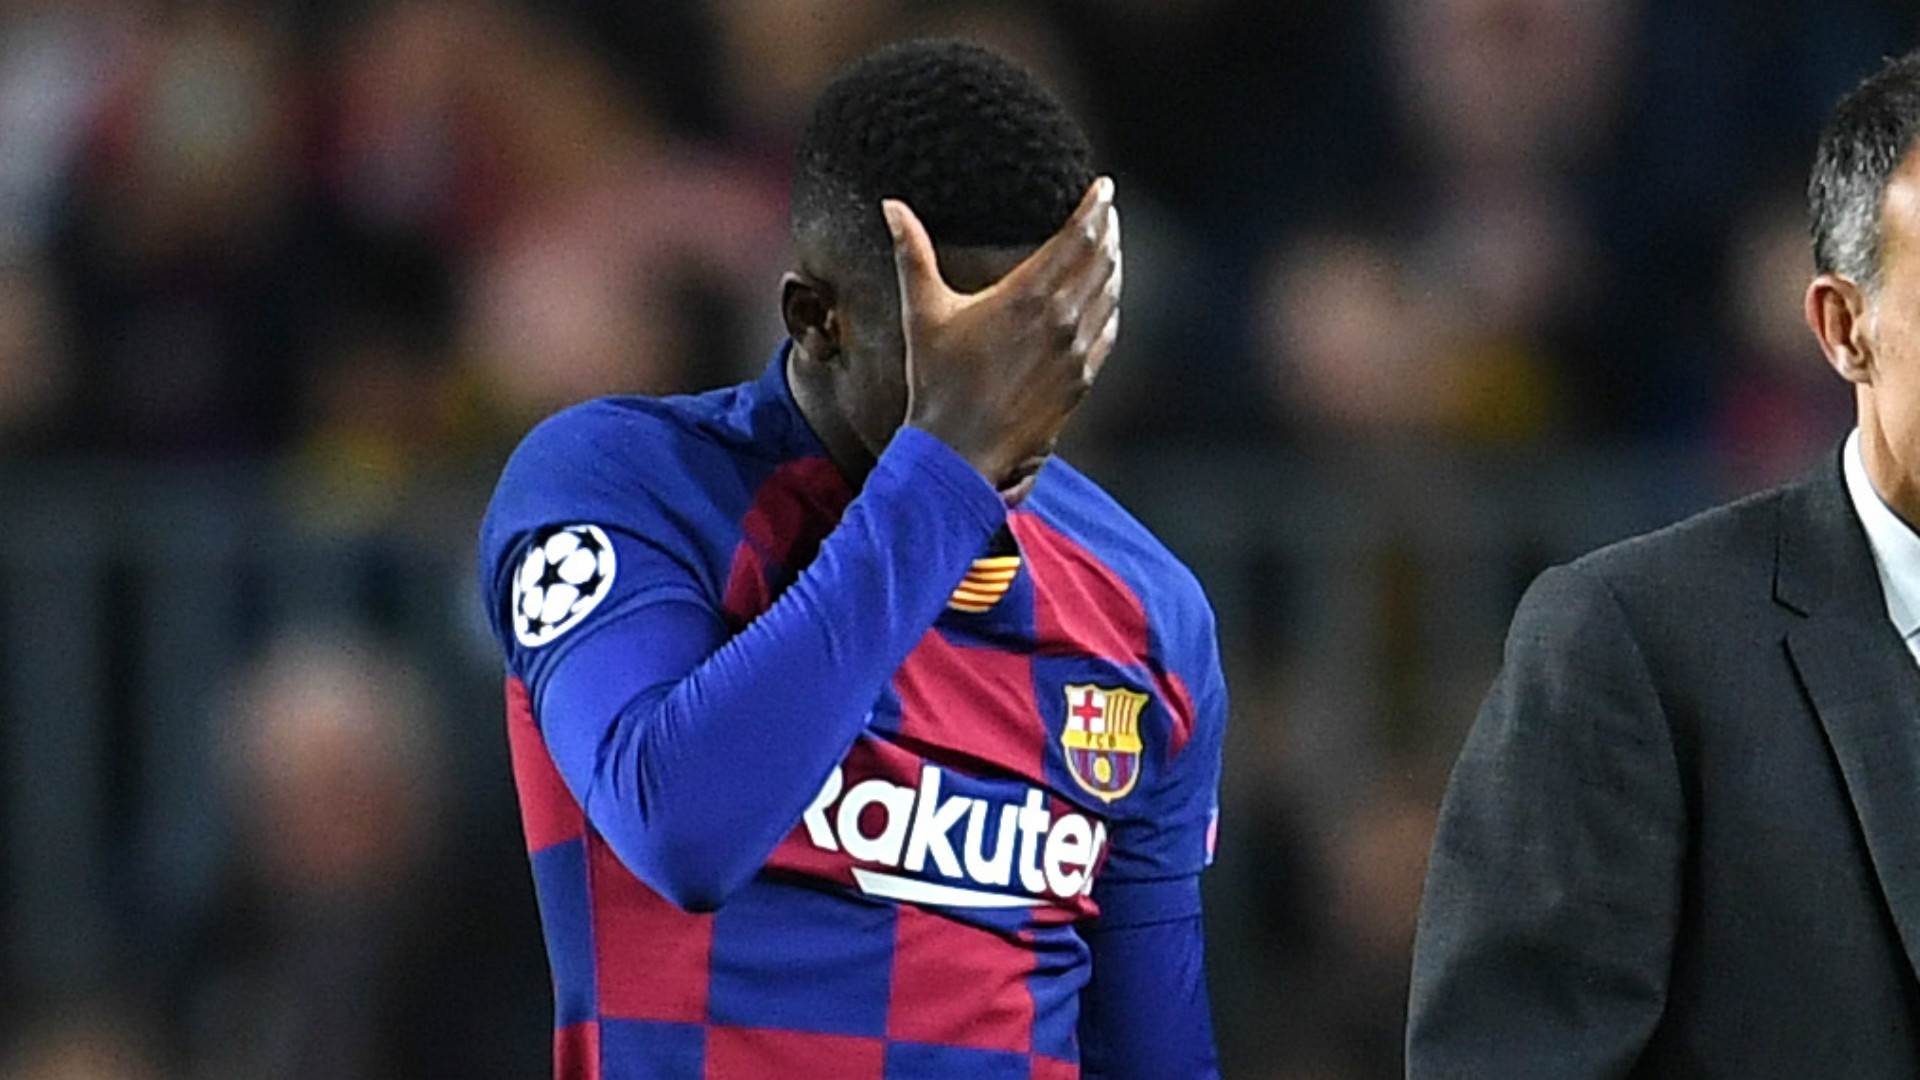 Barcelona's Dembele set to be sidelined for six months